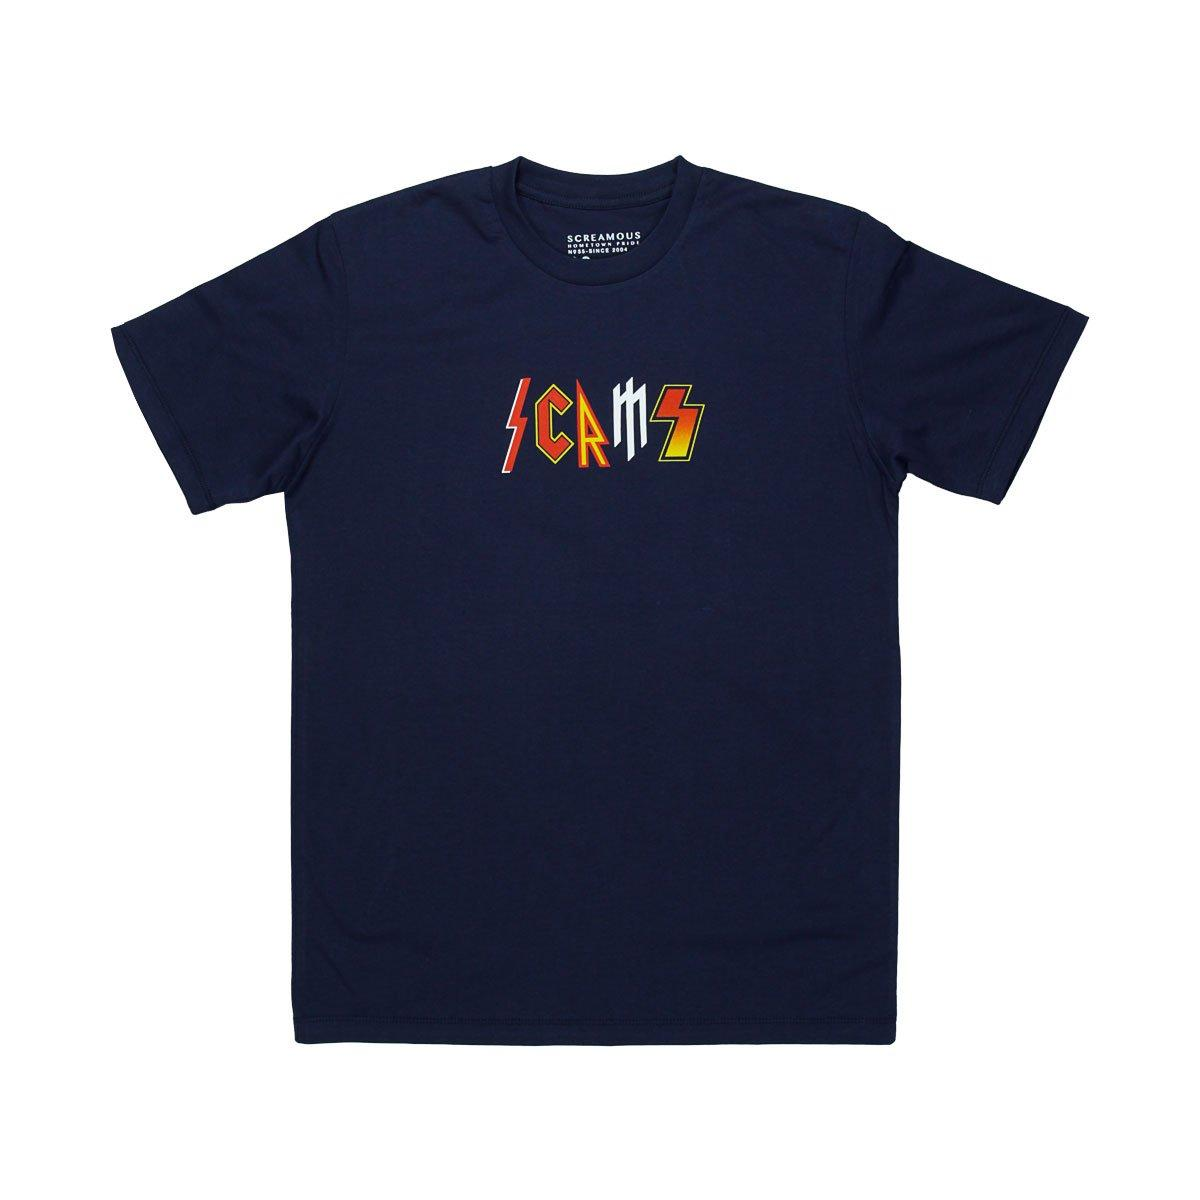 T Shirt Screamous Concert#1 Navy Blue